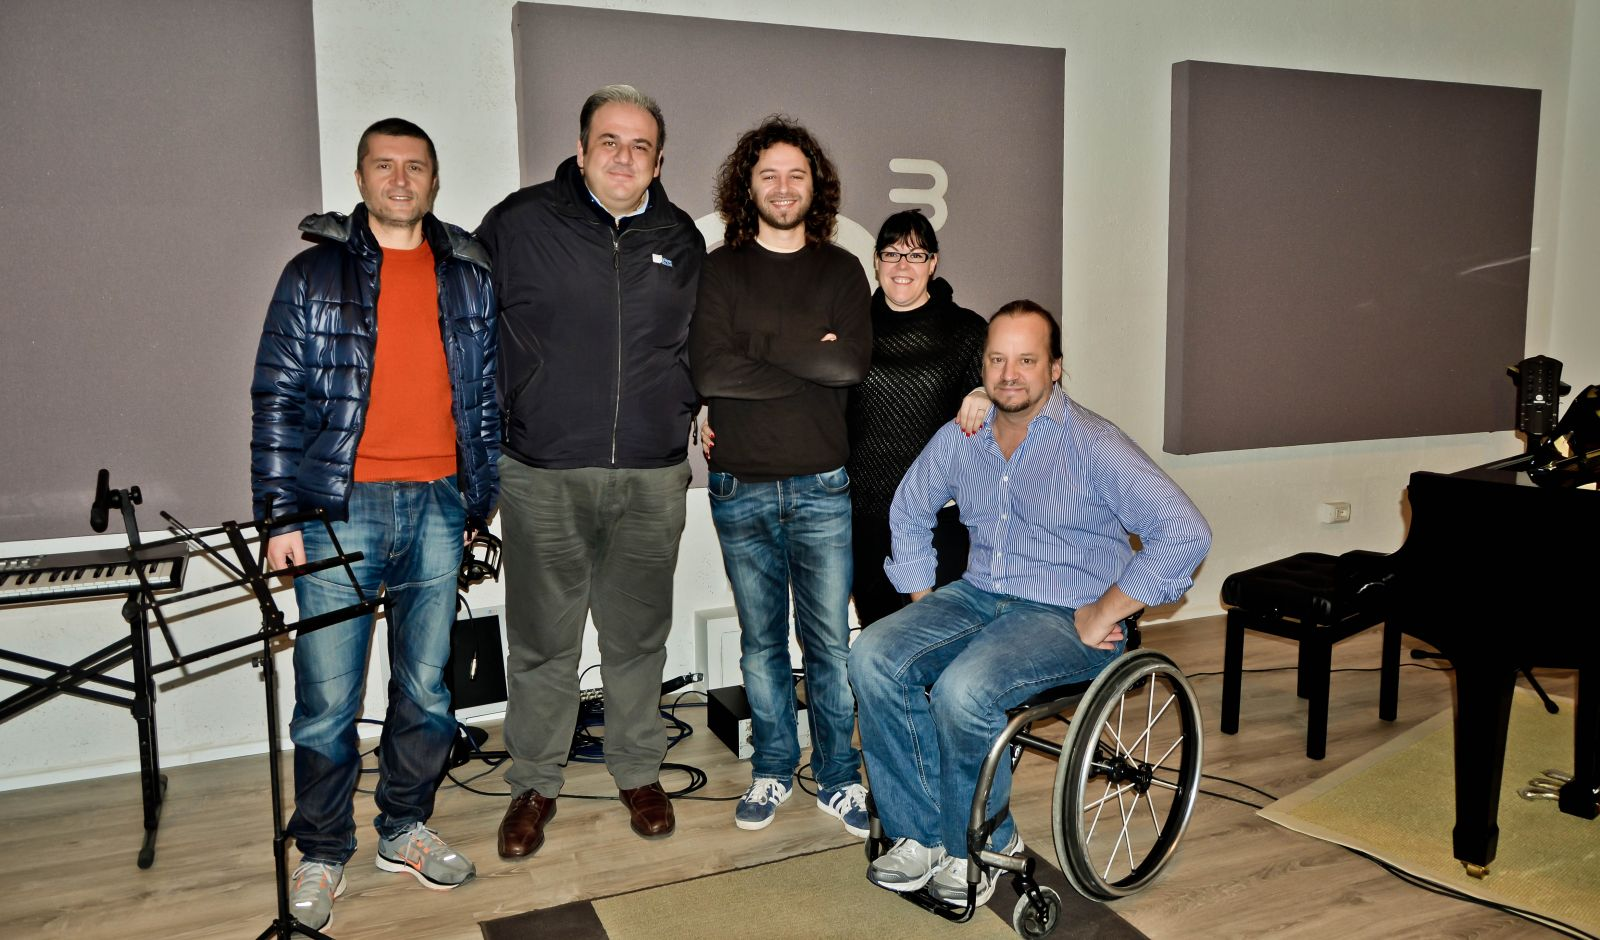 Scott Gledhill, Meyer Sound, in visita in Officina Musicale